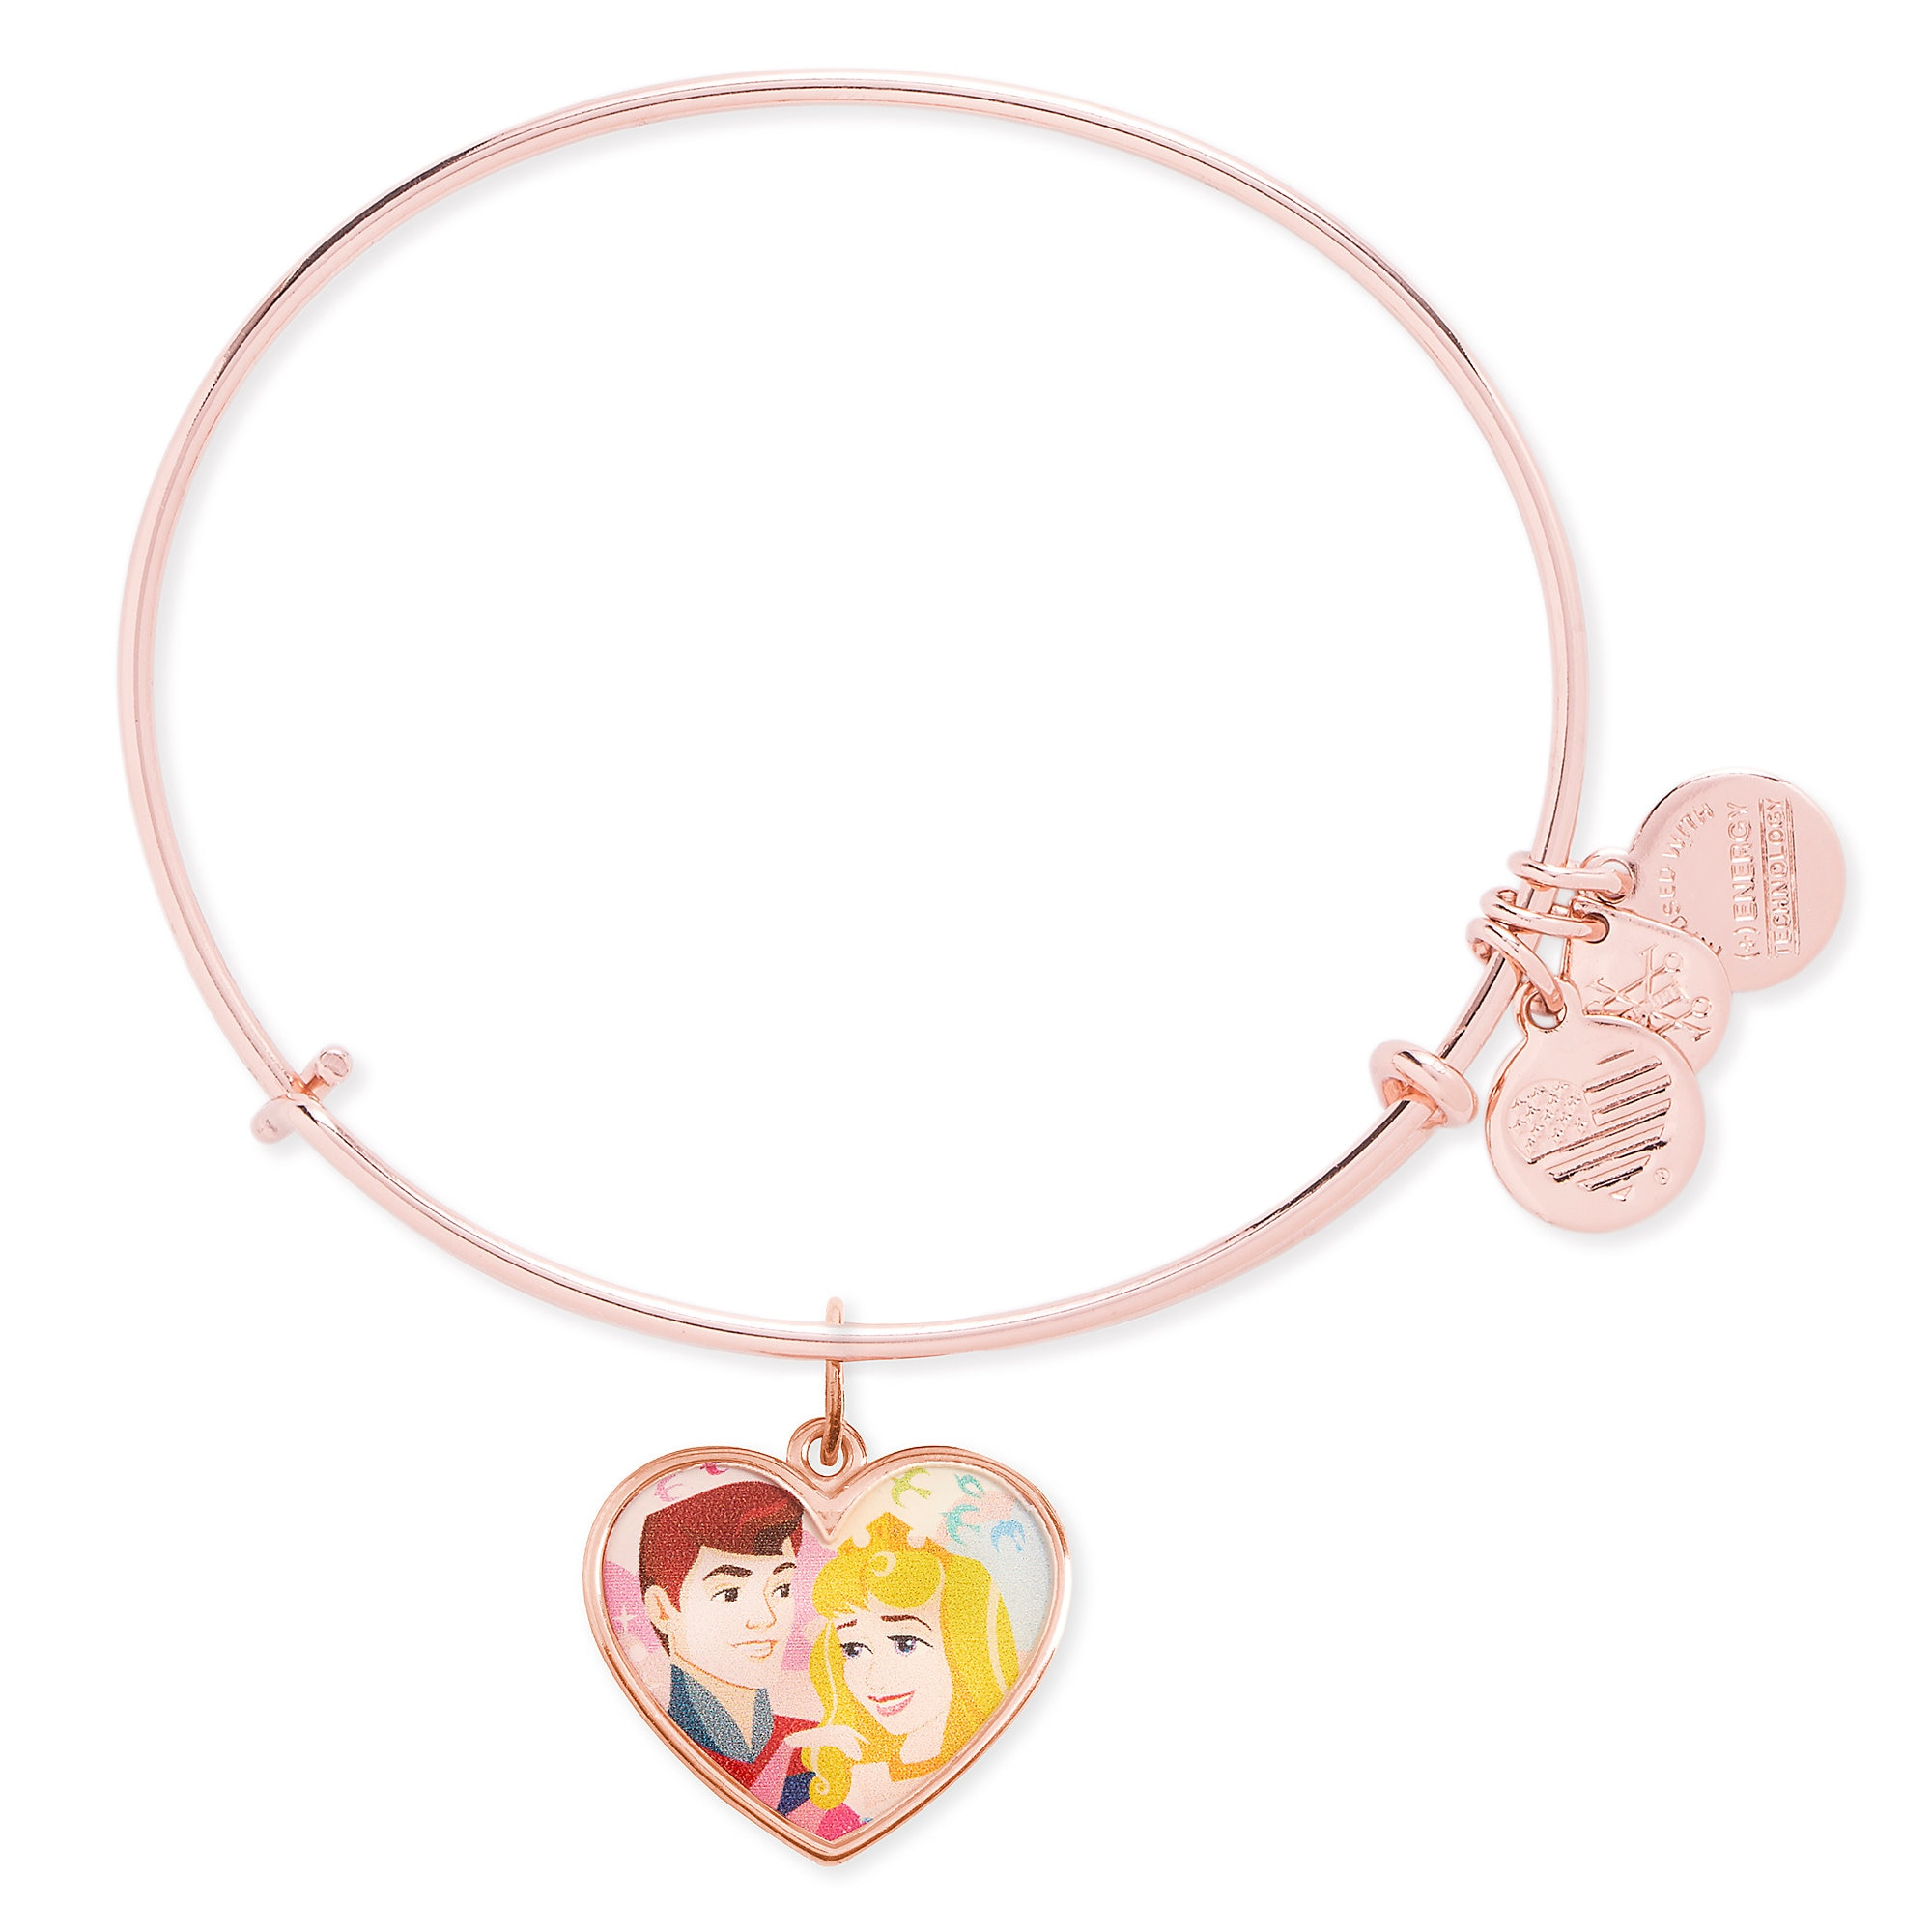 Aurora and Prince Phillip Valentine's Day Bangle by Alex and Ani